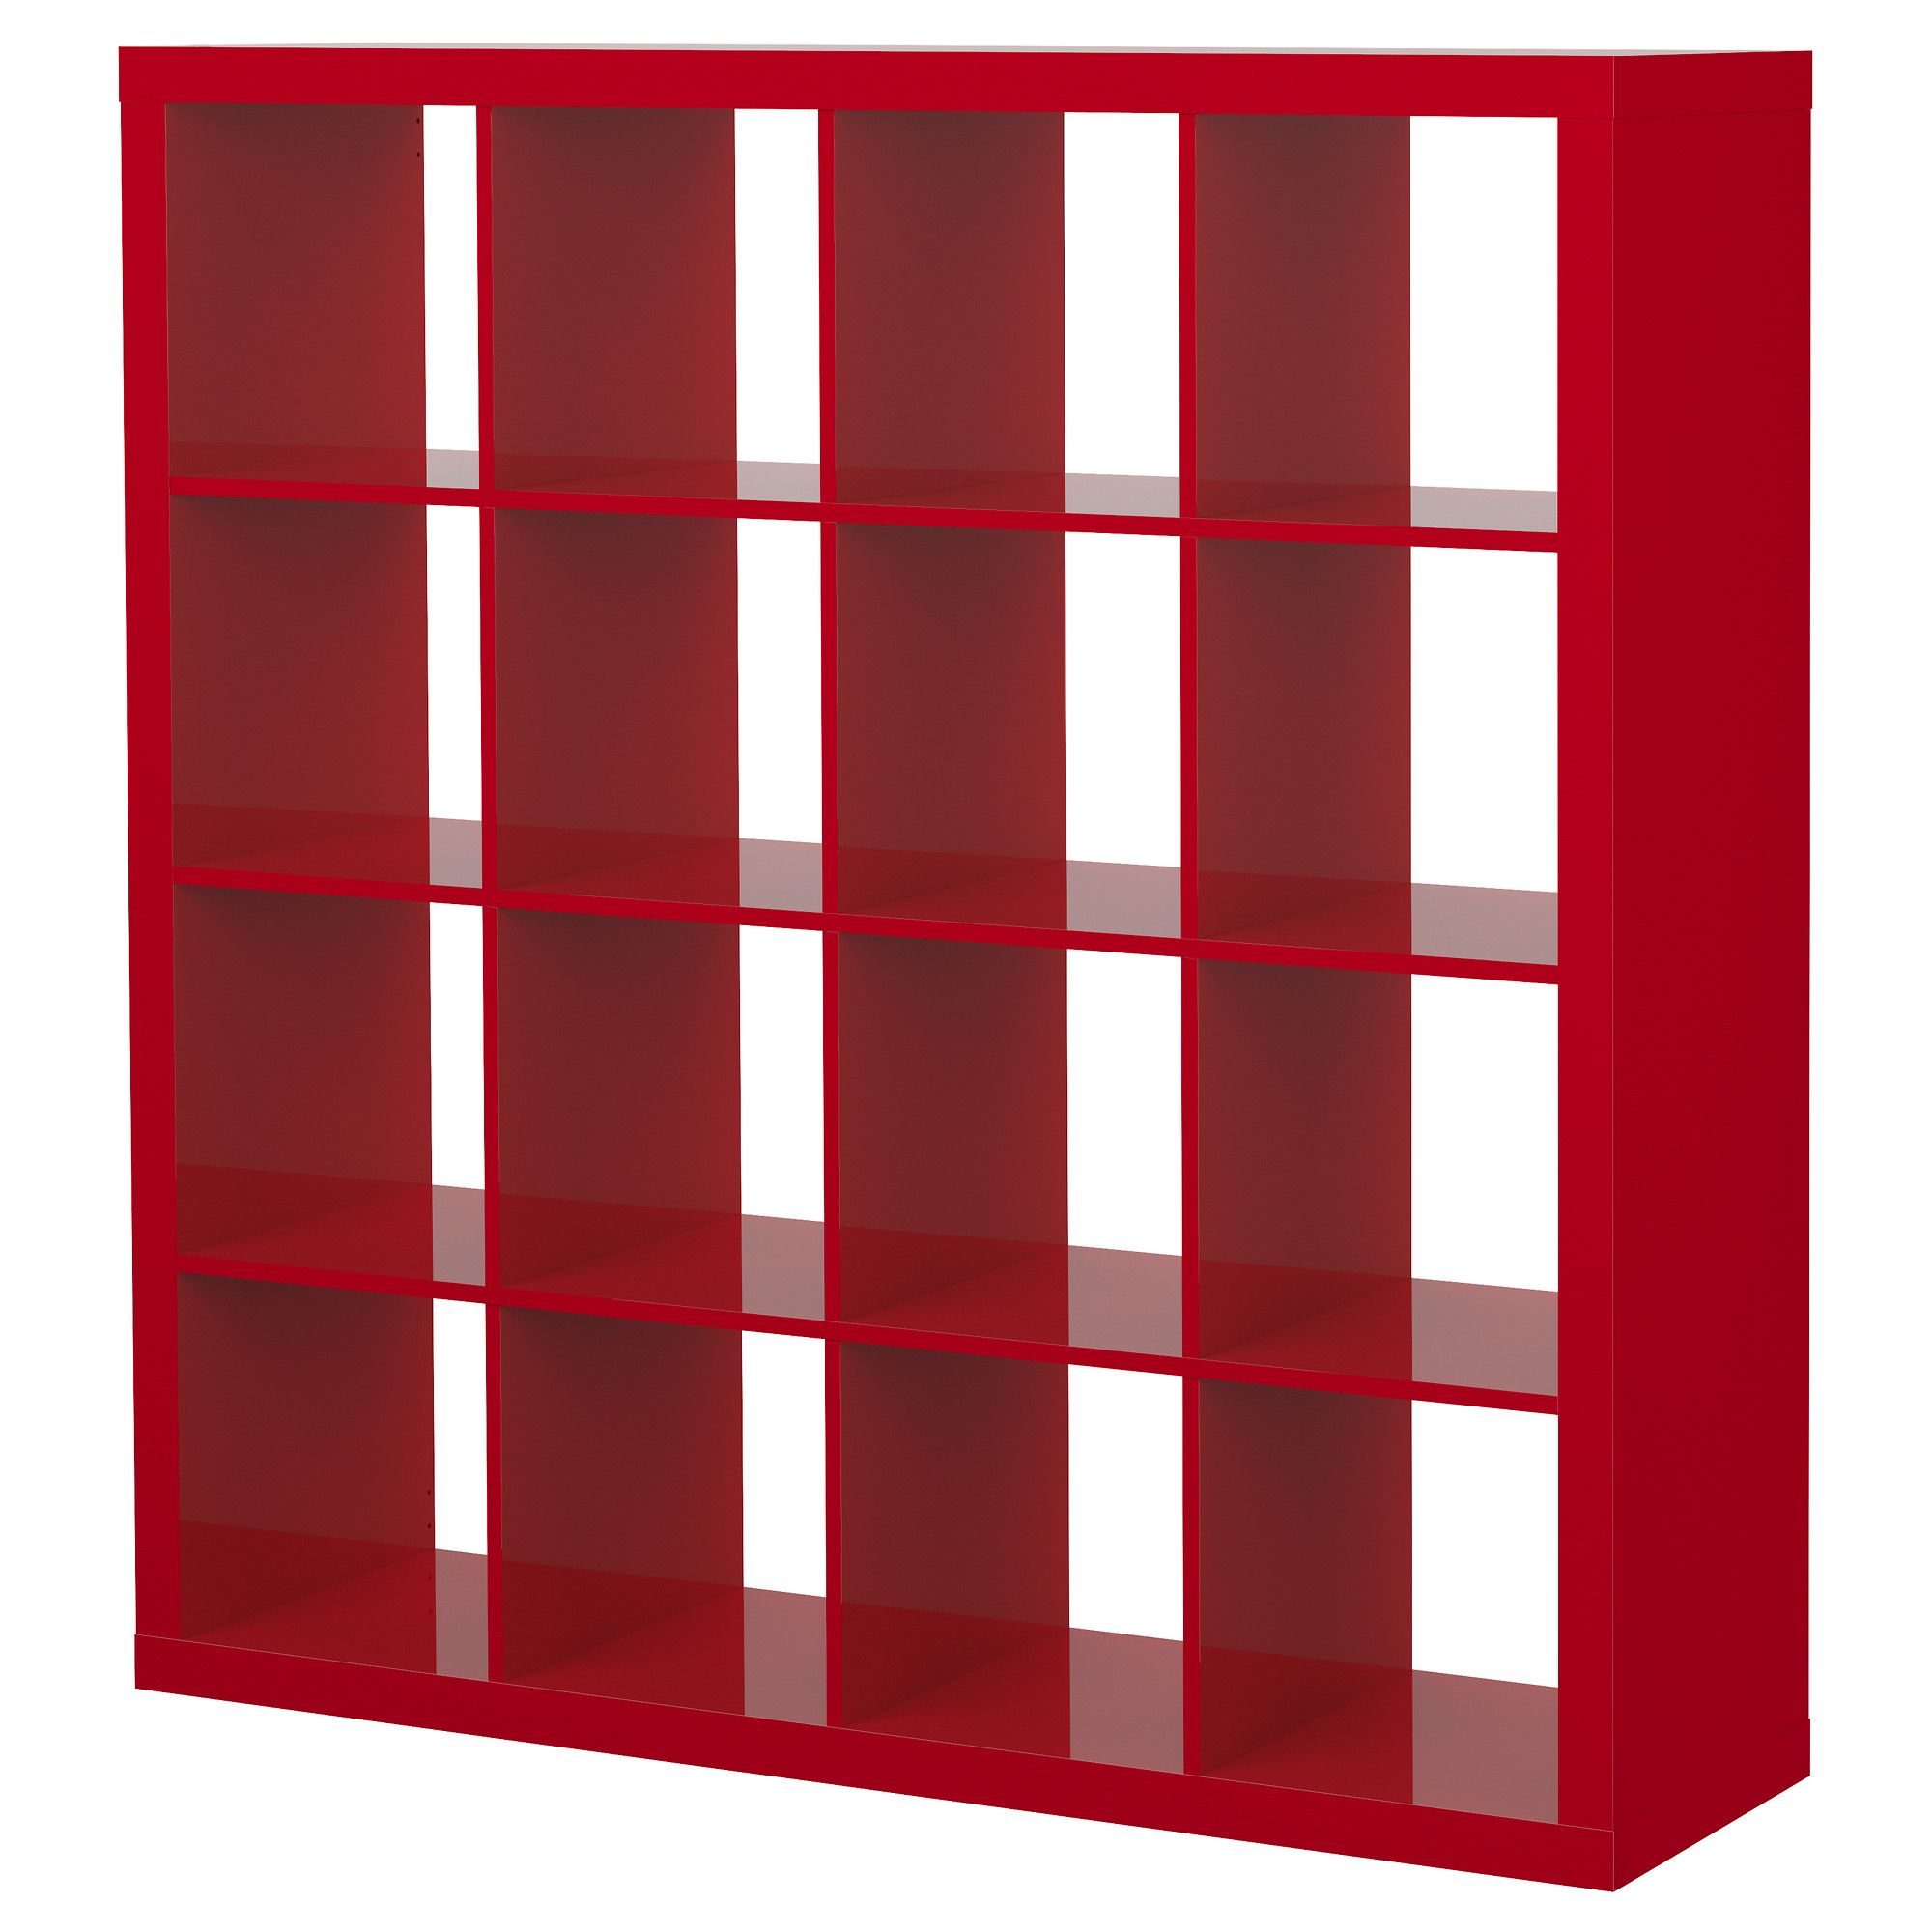 EXPEDIT Shelving Unit - High Gloss Red - IKEA